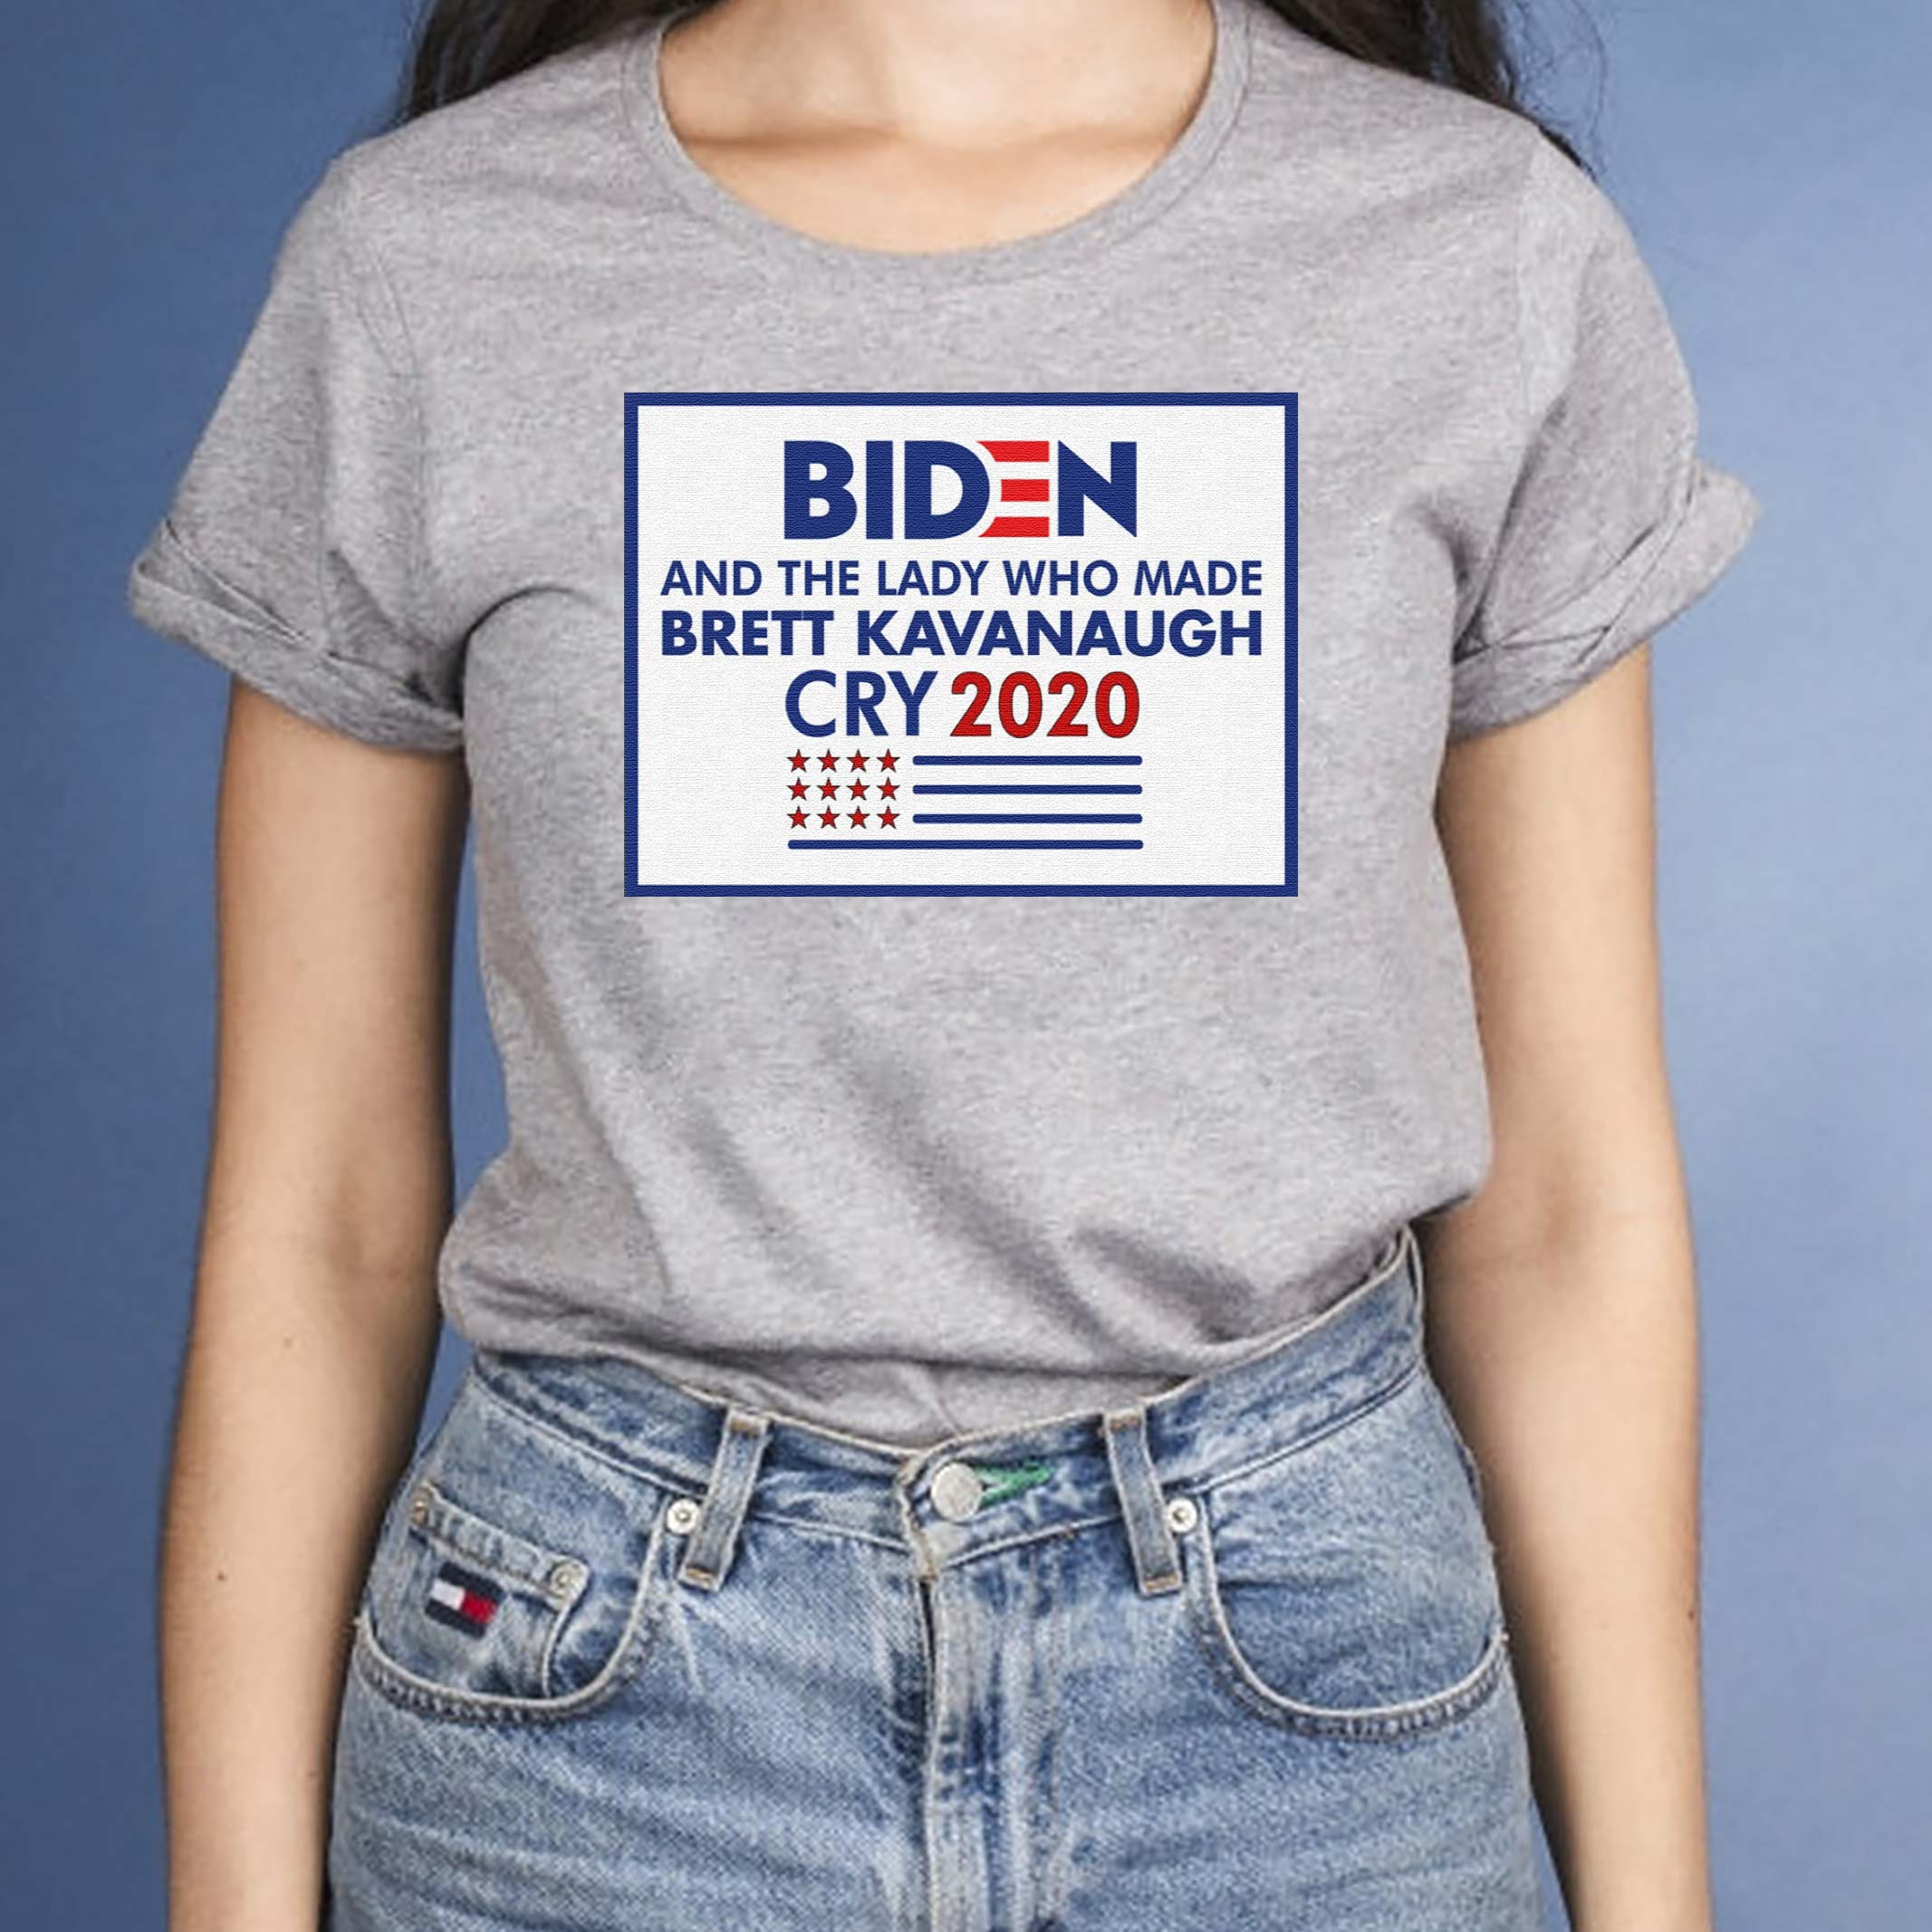 Biden-And-The-Lady-Who-Made-Brett-Kavanaugh-Cry-2020-T-Shirt